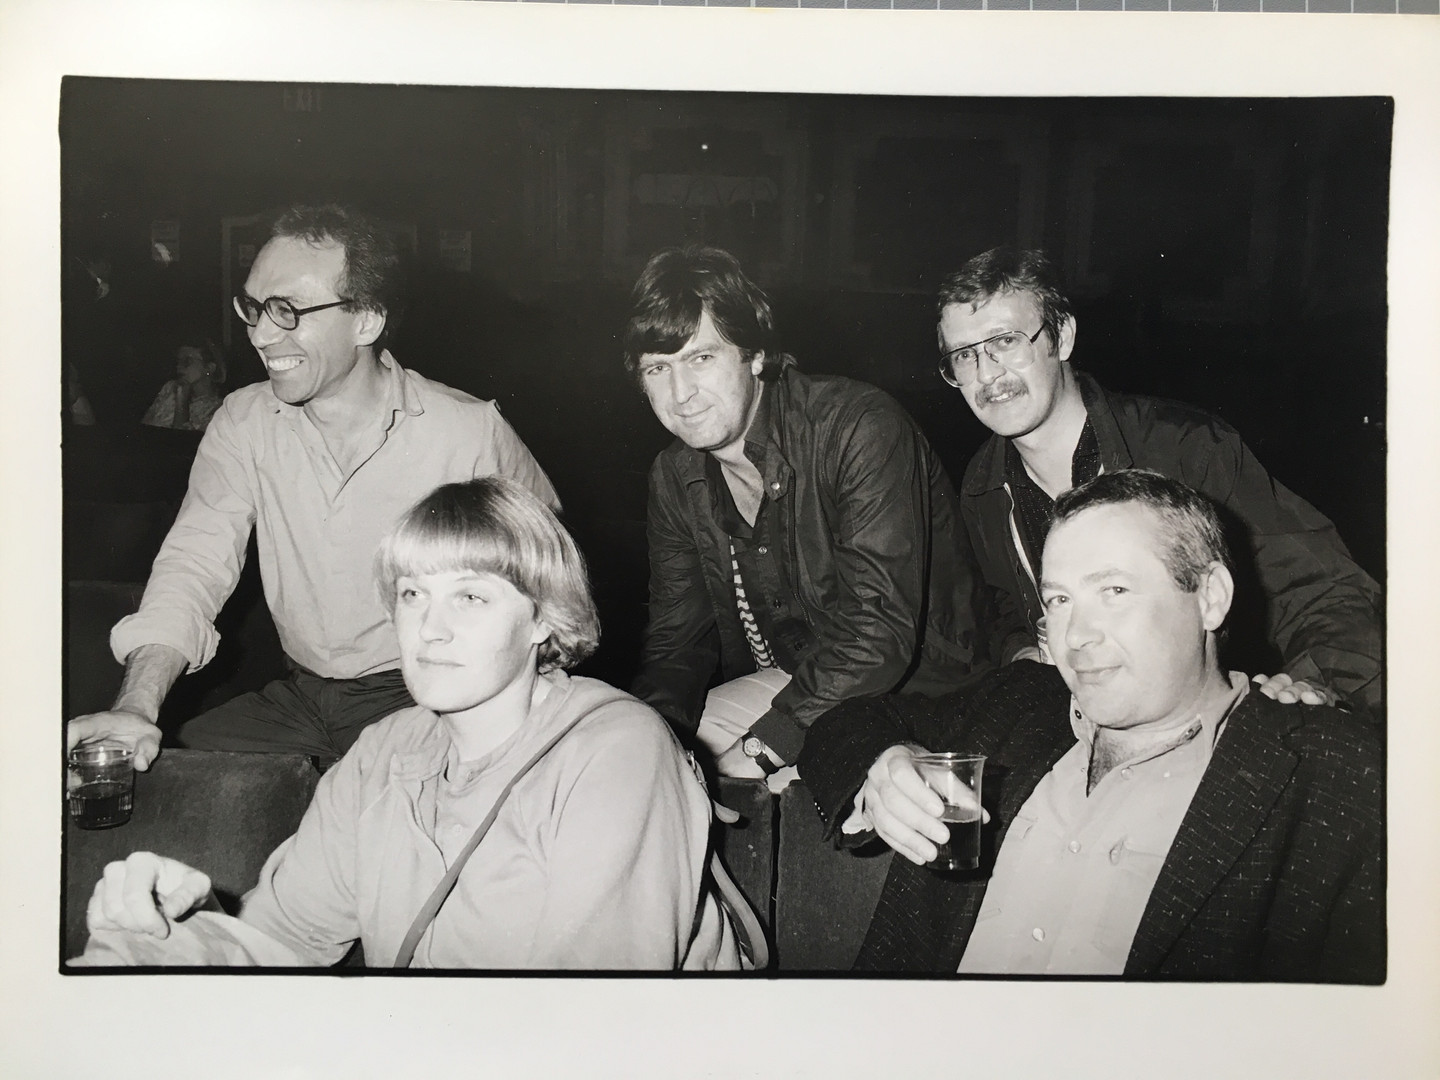 [back row, left to right] Laurie Lewis, Nick , Jim Nelson. [front] Julie & Brian Westbury